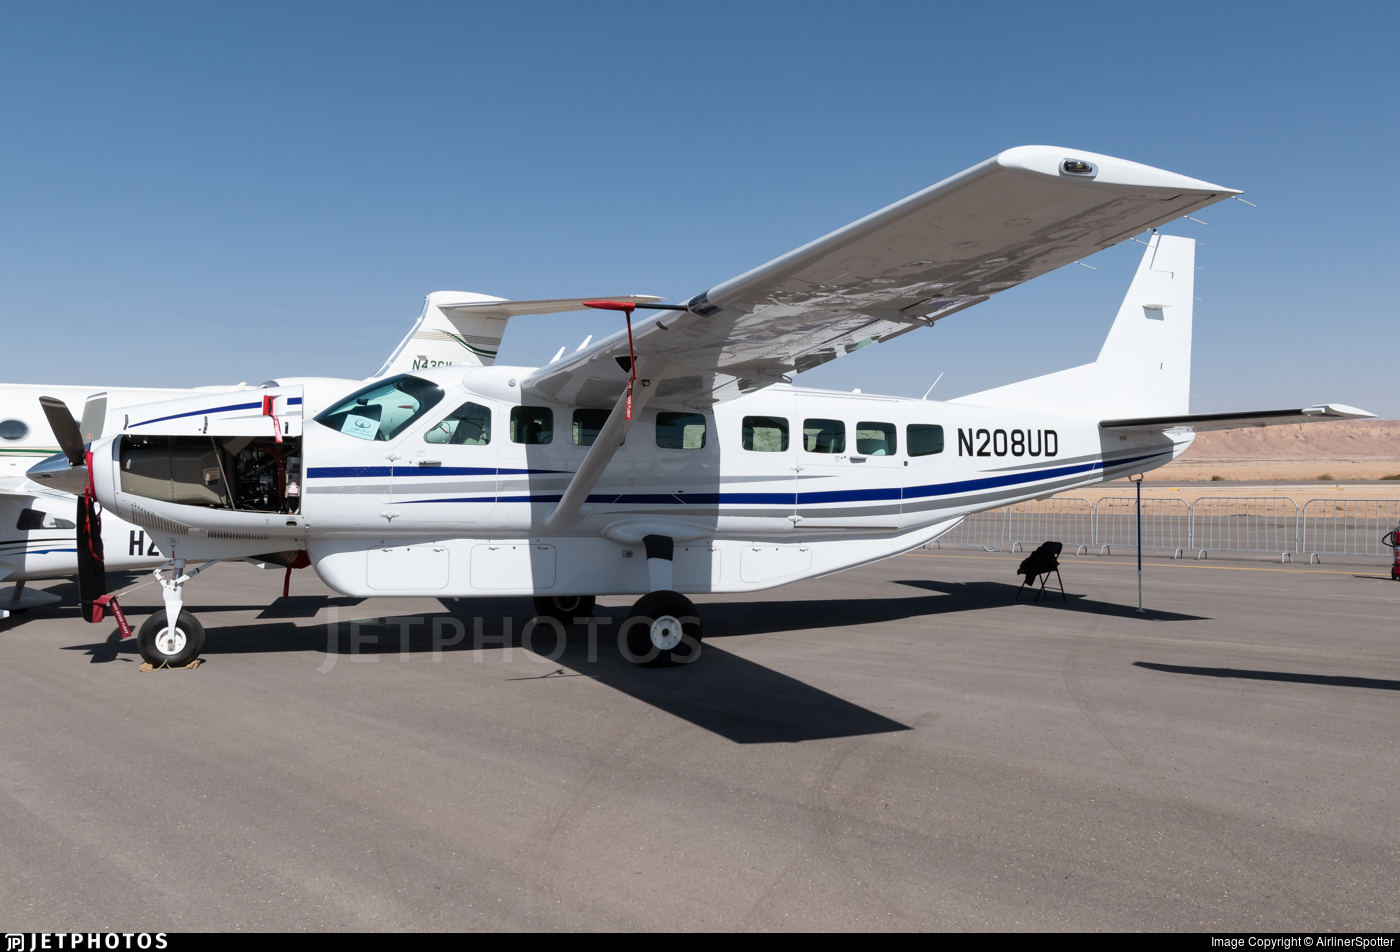 N208ud Cessna 208b Grand Caravan Textron Aviation Airlinerspotter Jetphotos